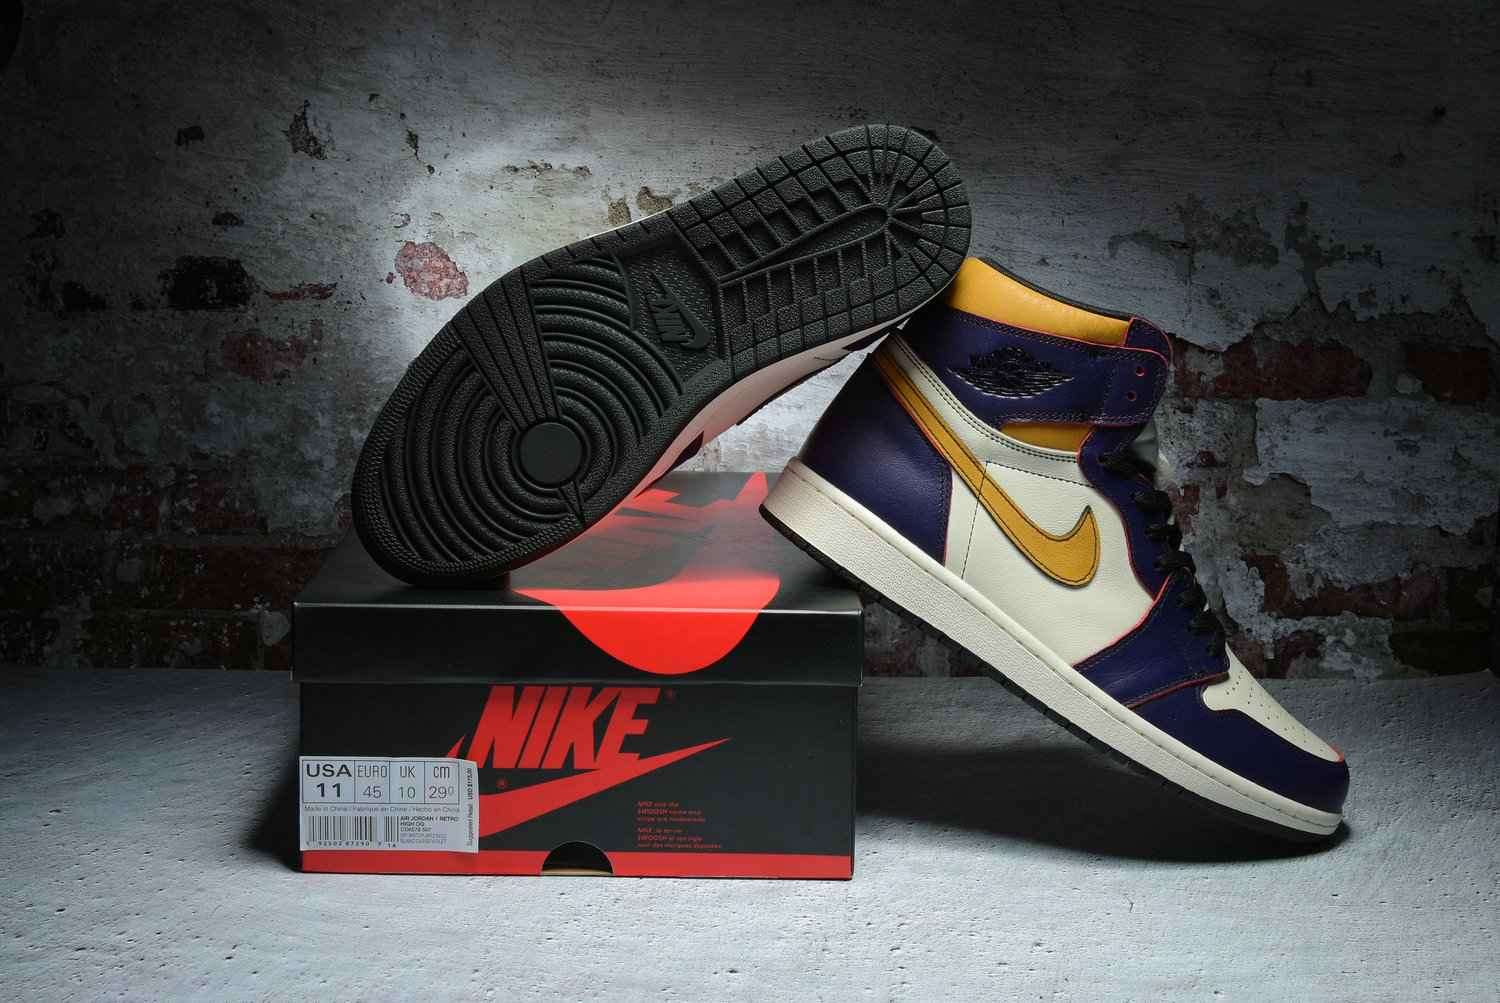 Nike X SB Air Jordan 1 Lakers